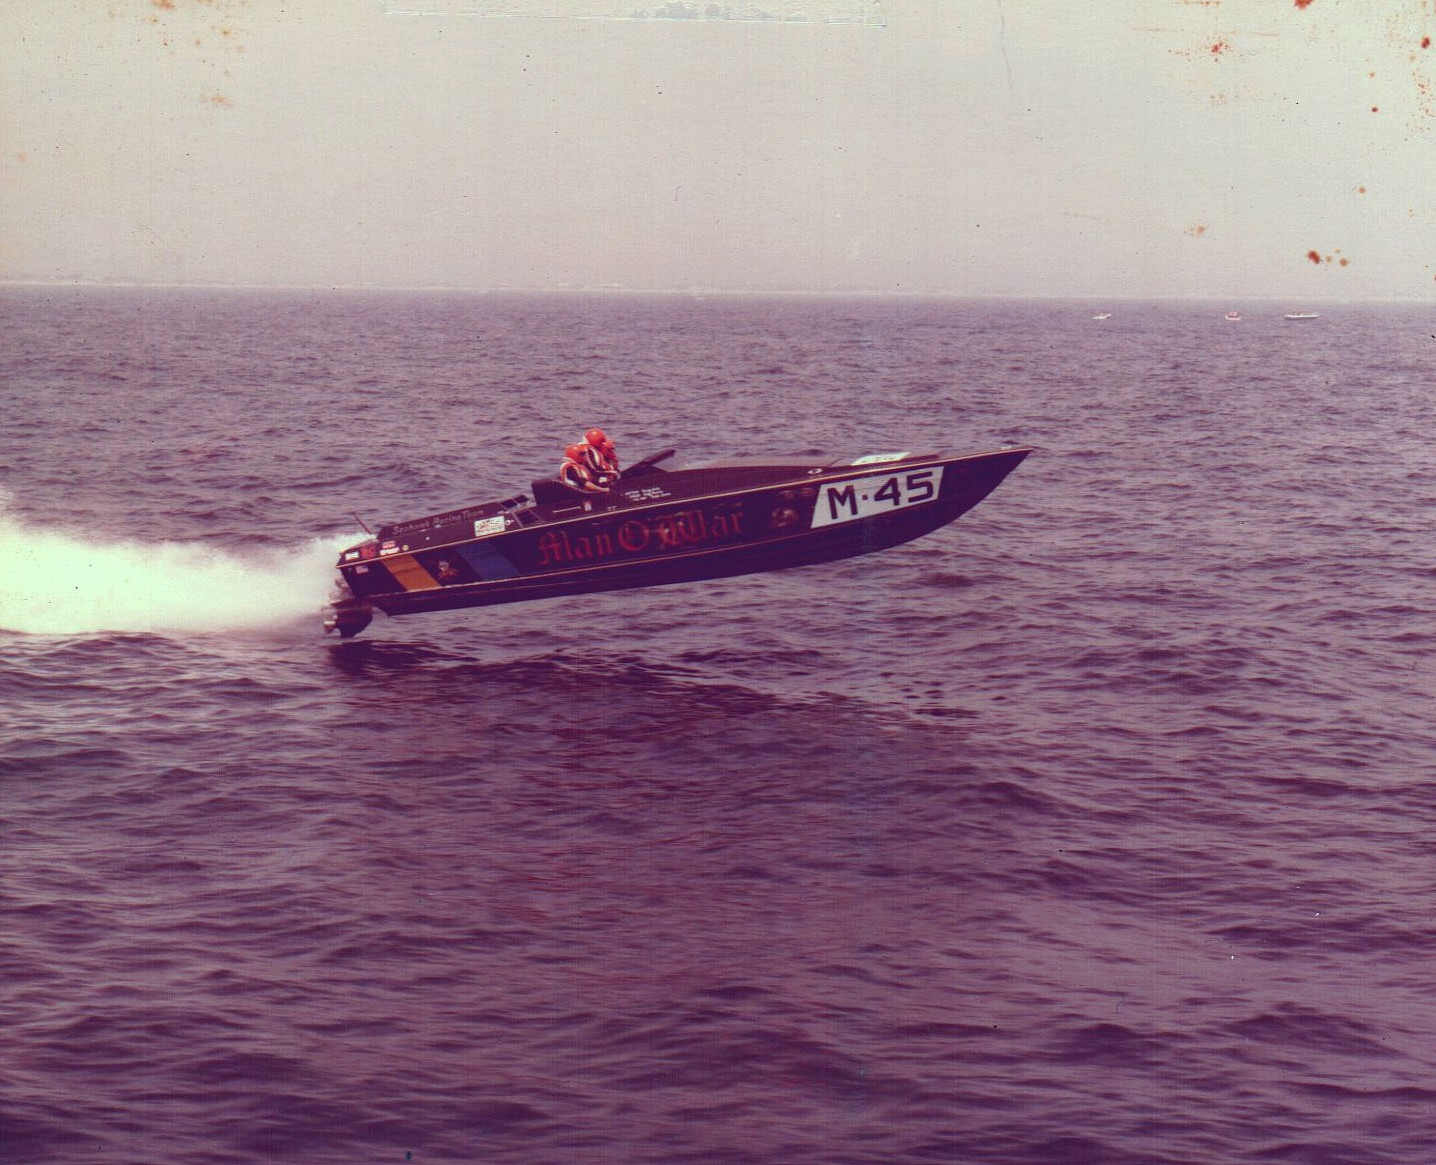 Historical photo: offshore racing boat that george perdomo built the engine for leaps from the water